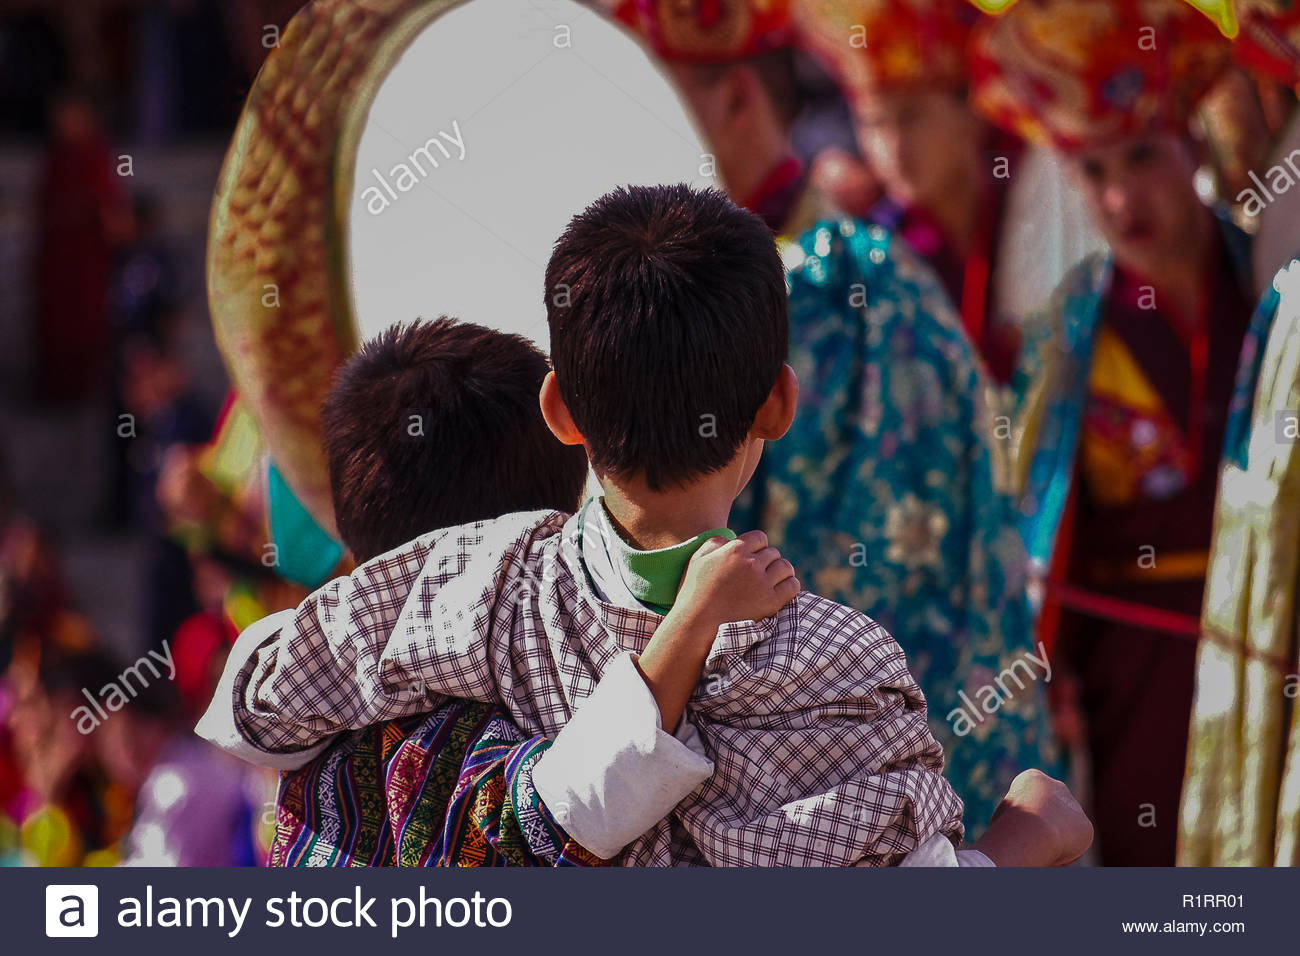 Two young boys in traditional costume watching the celebrations at the Thimphu Tsechu Festival, in Bhutan, Crowd scene, musicians, blurred background - Stock Image